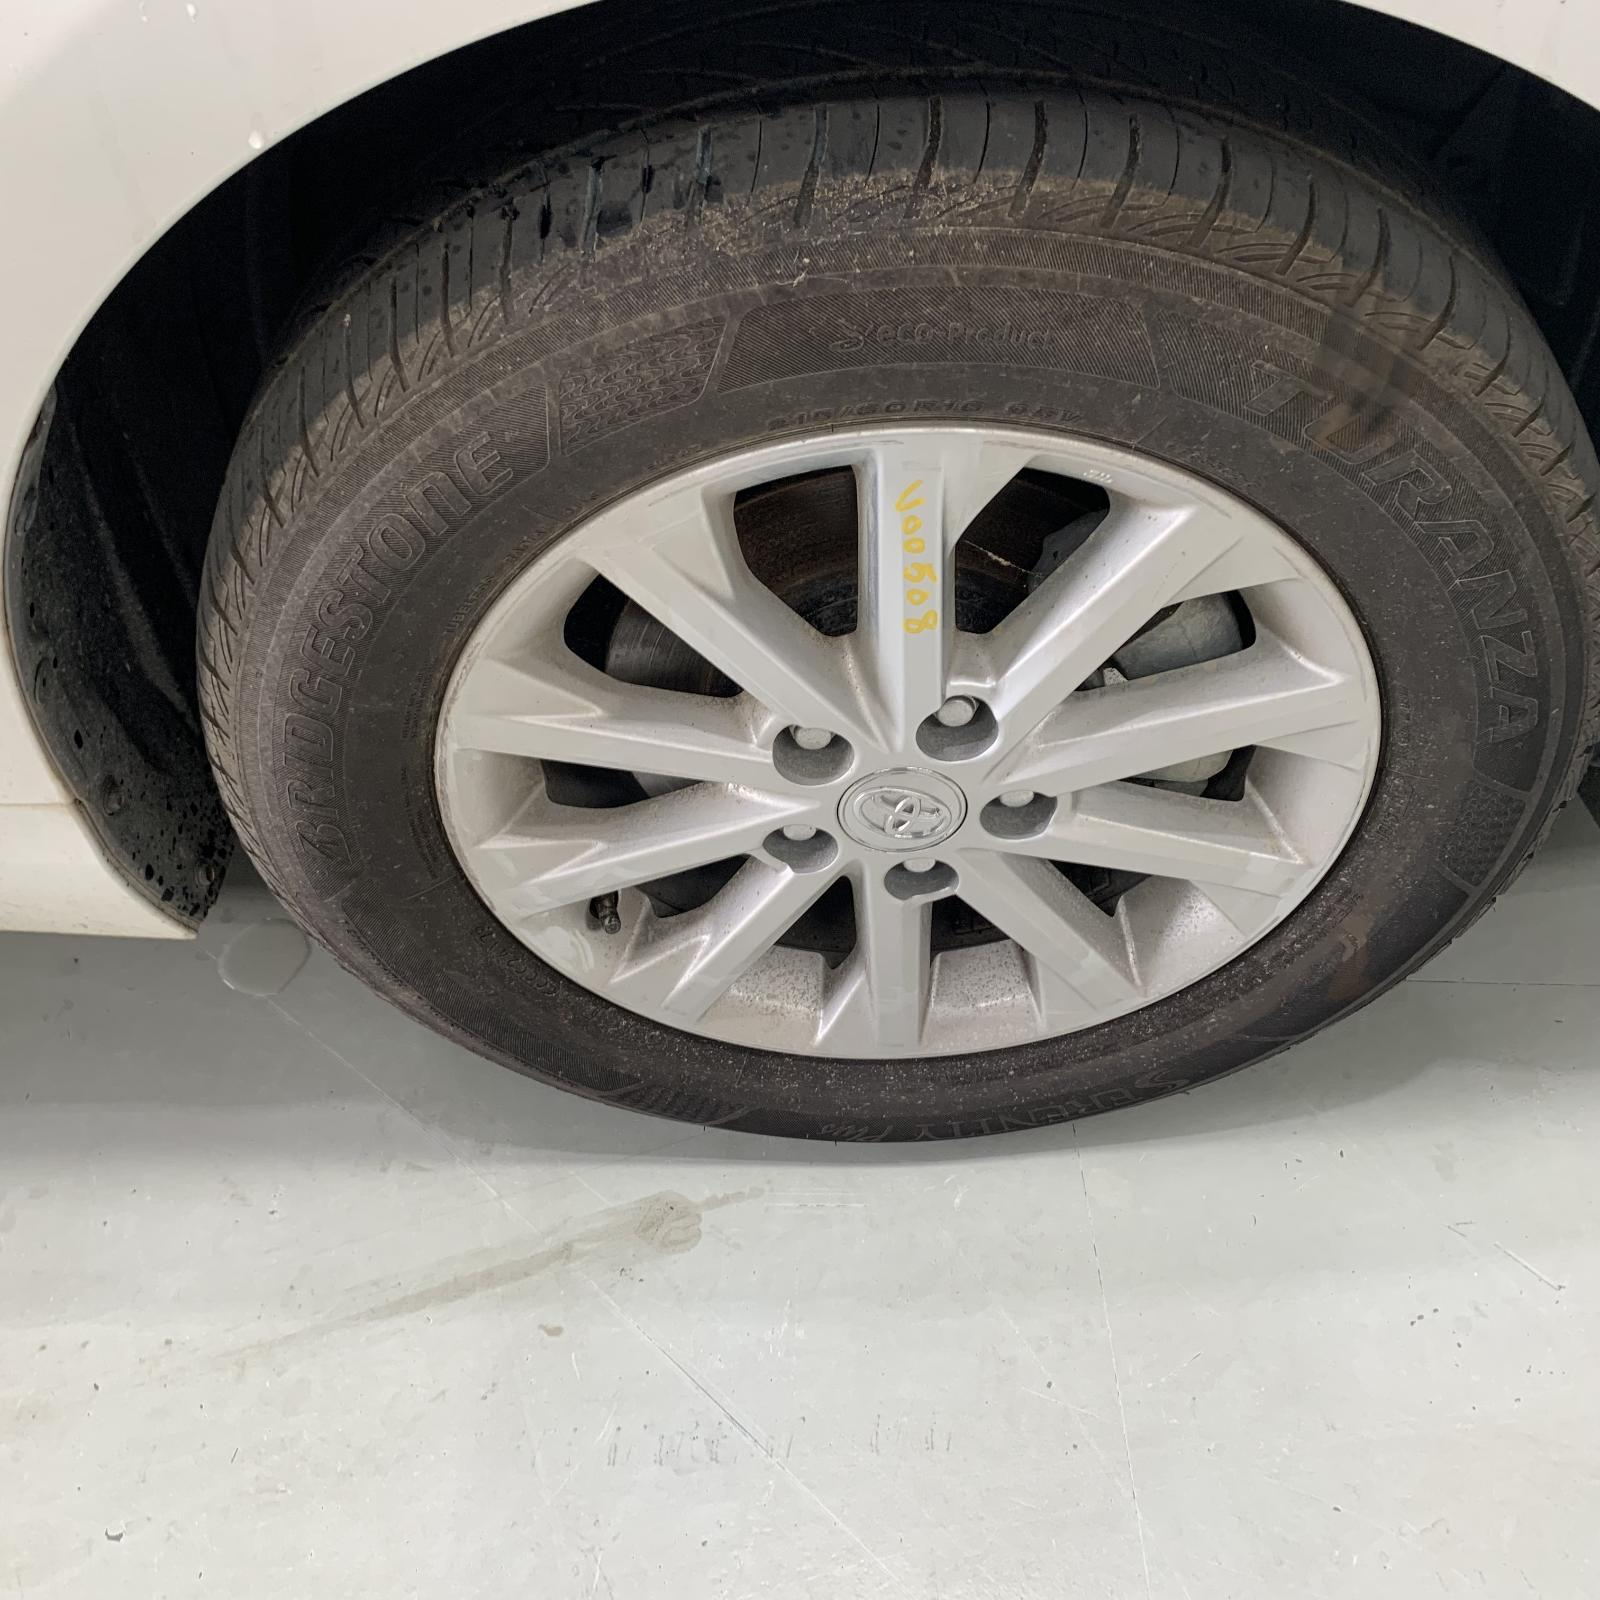 TOYOTA CAMRY, Wheel Mag, FACTORY, 16X6.5IN, ACV50, ALTISE, 05/15-10/17